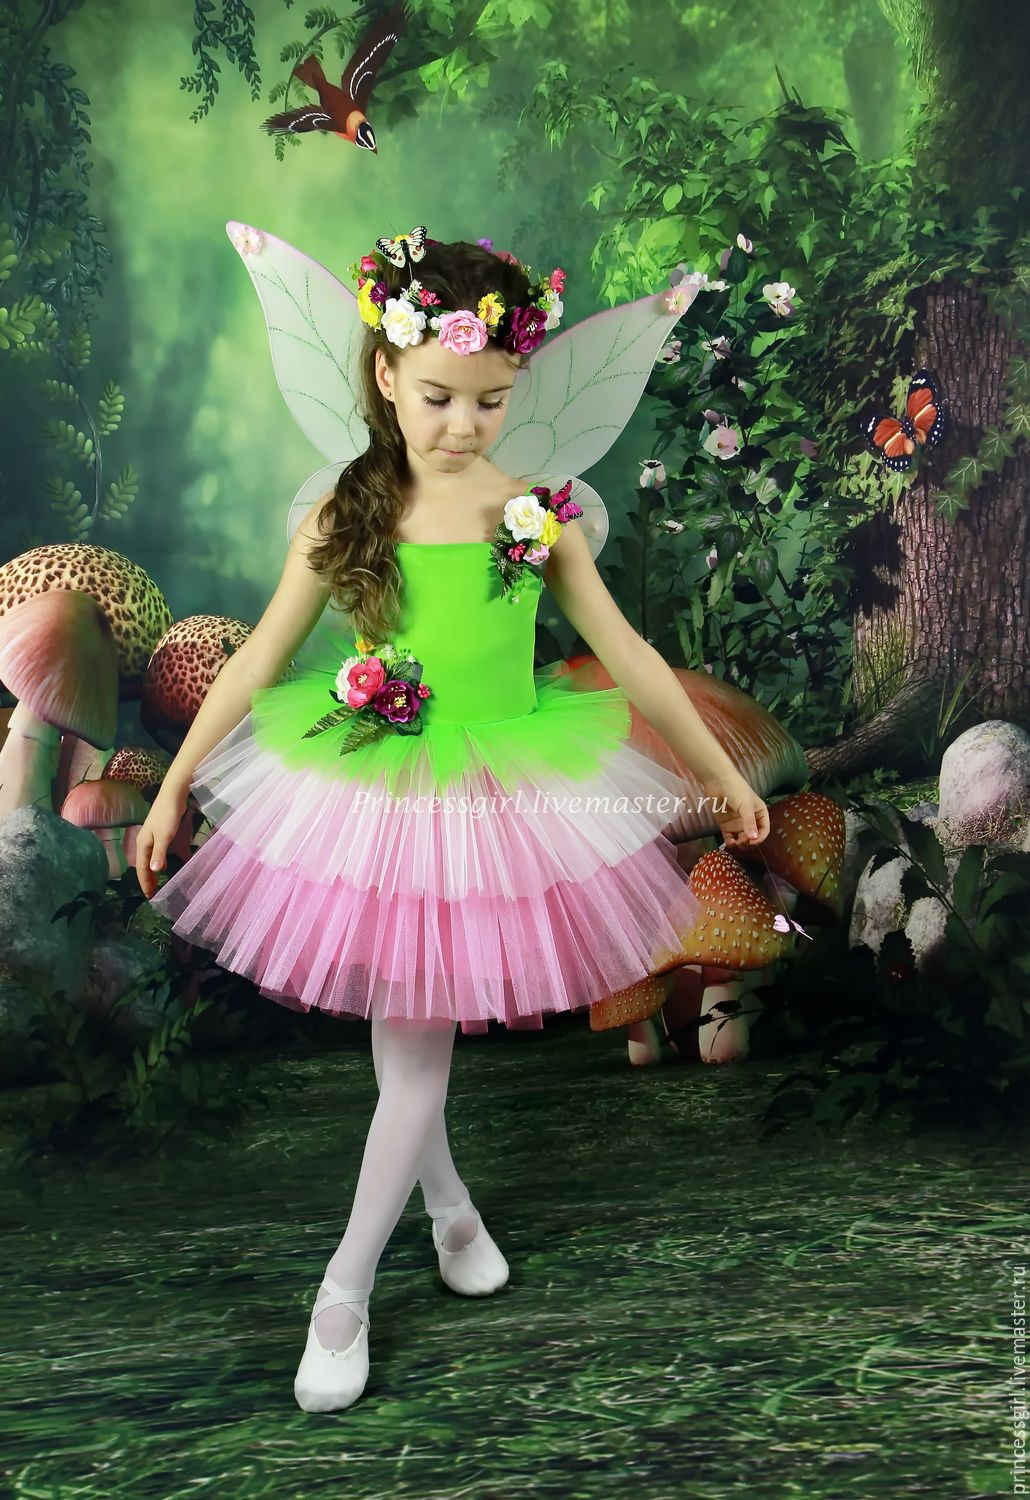 eb8b3bb68708 Costume Flower Fairies – shop online on Livemaster with shipping ...